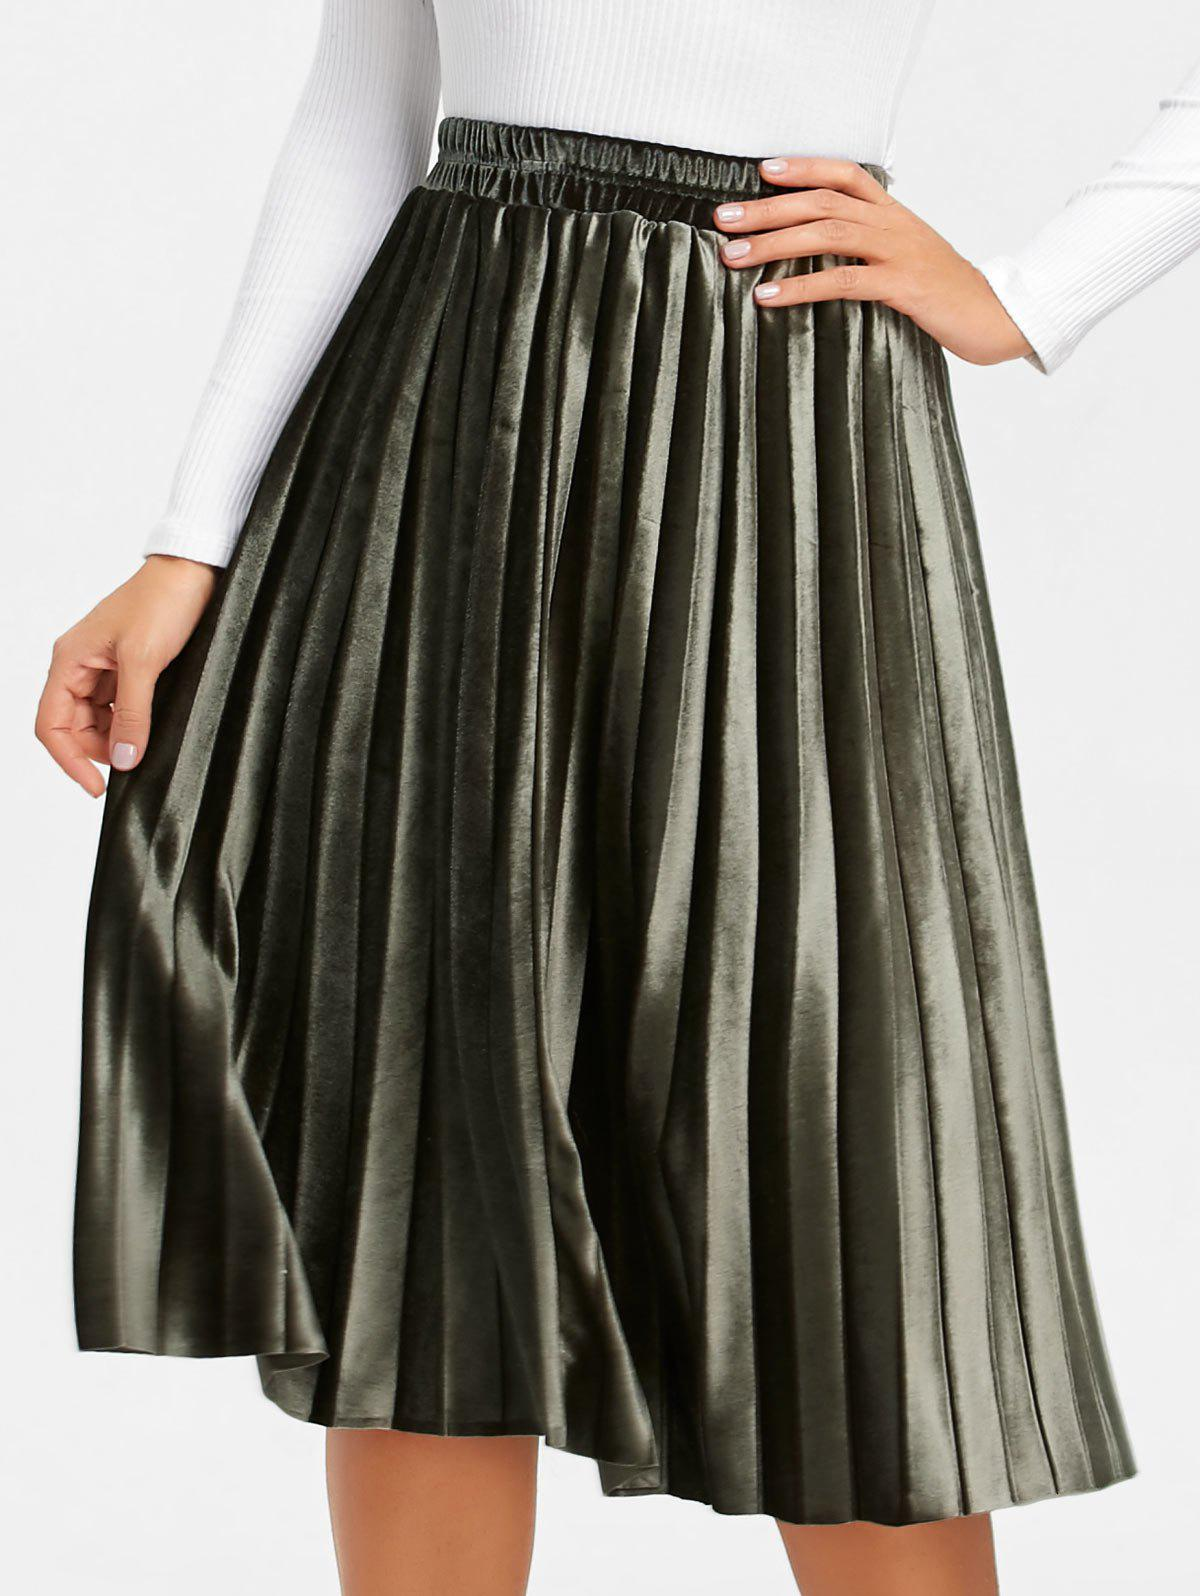 Midi High Waisted Velvet Pleated Skirt - ARMY GREEN S